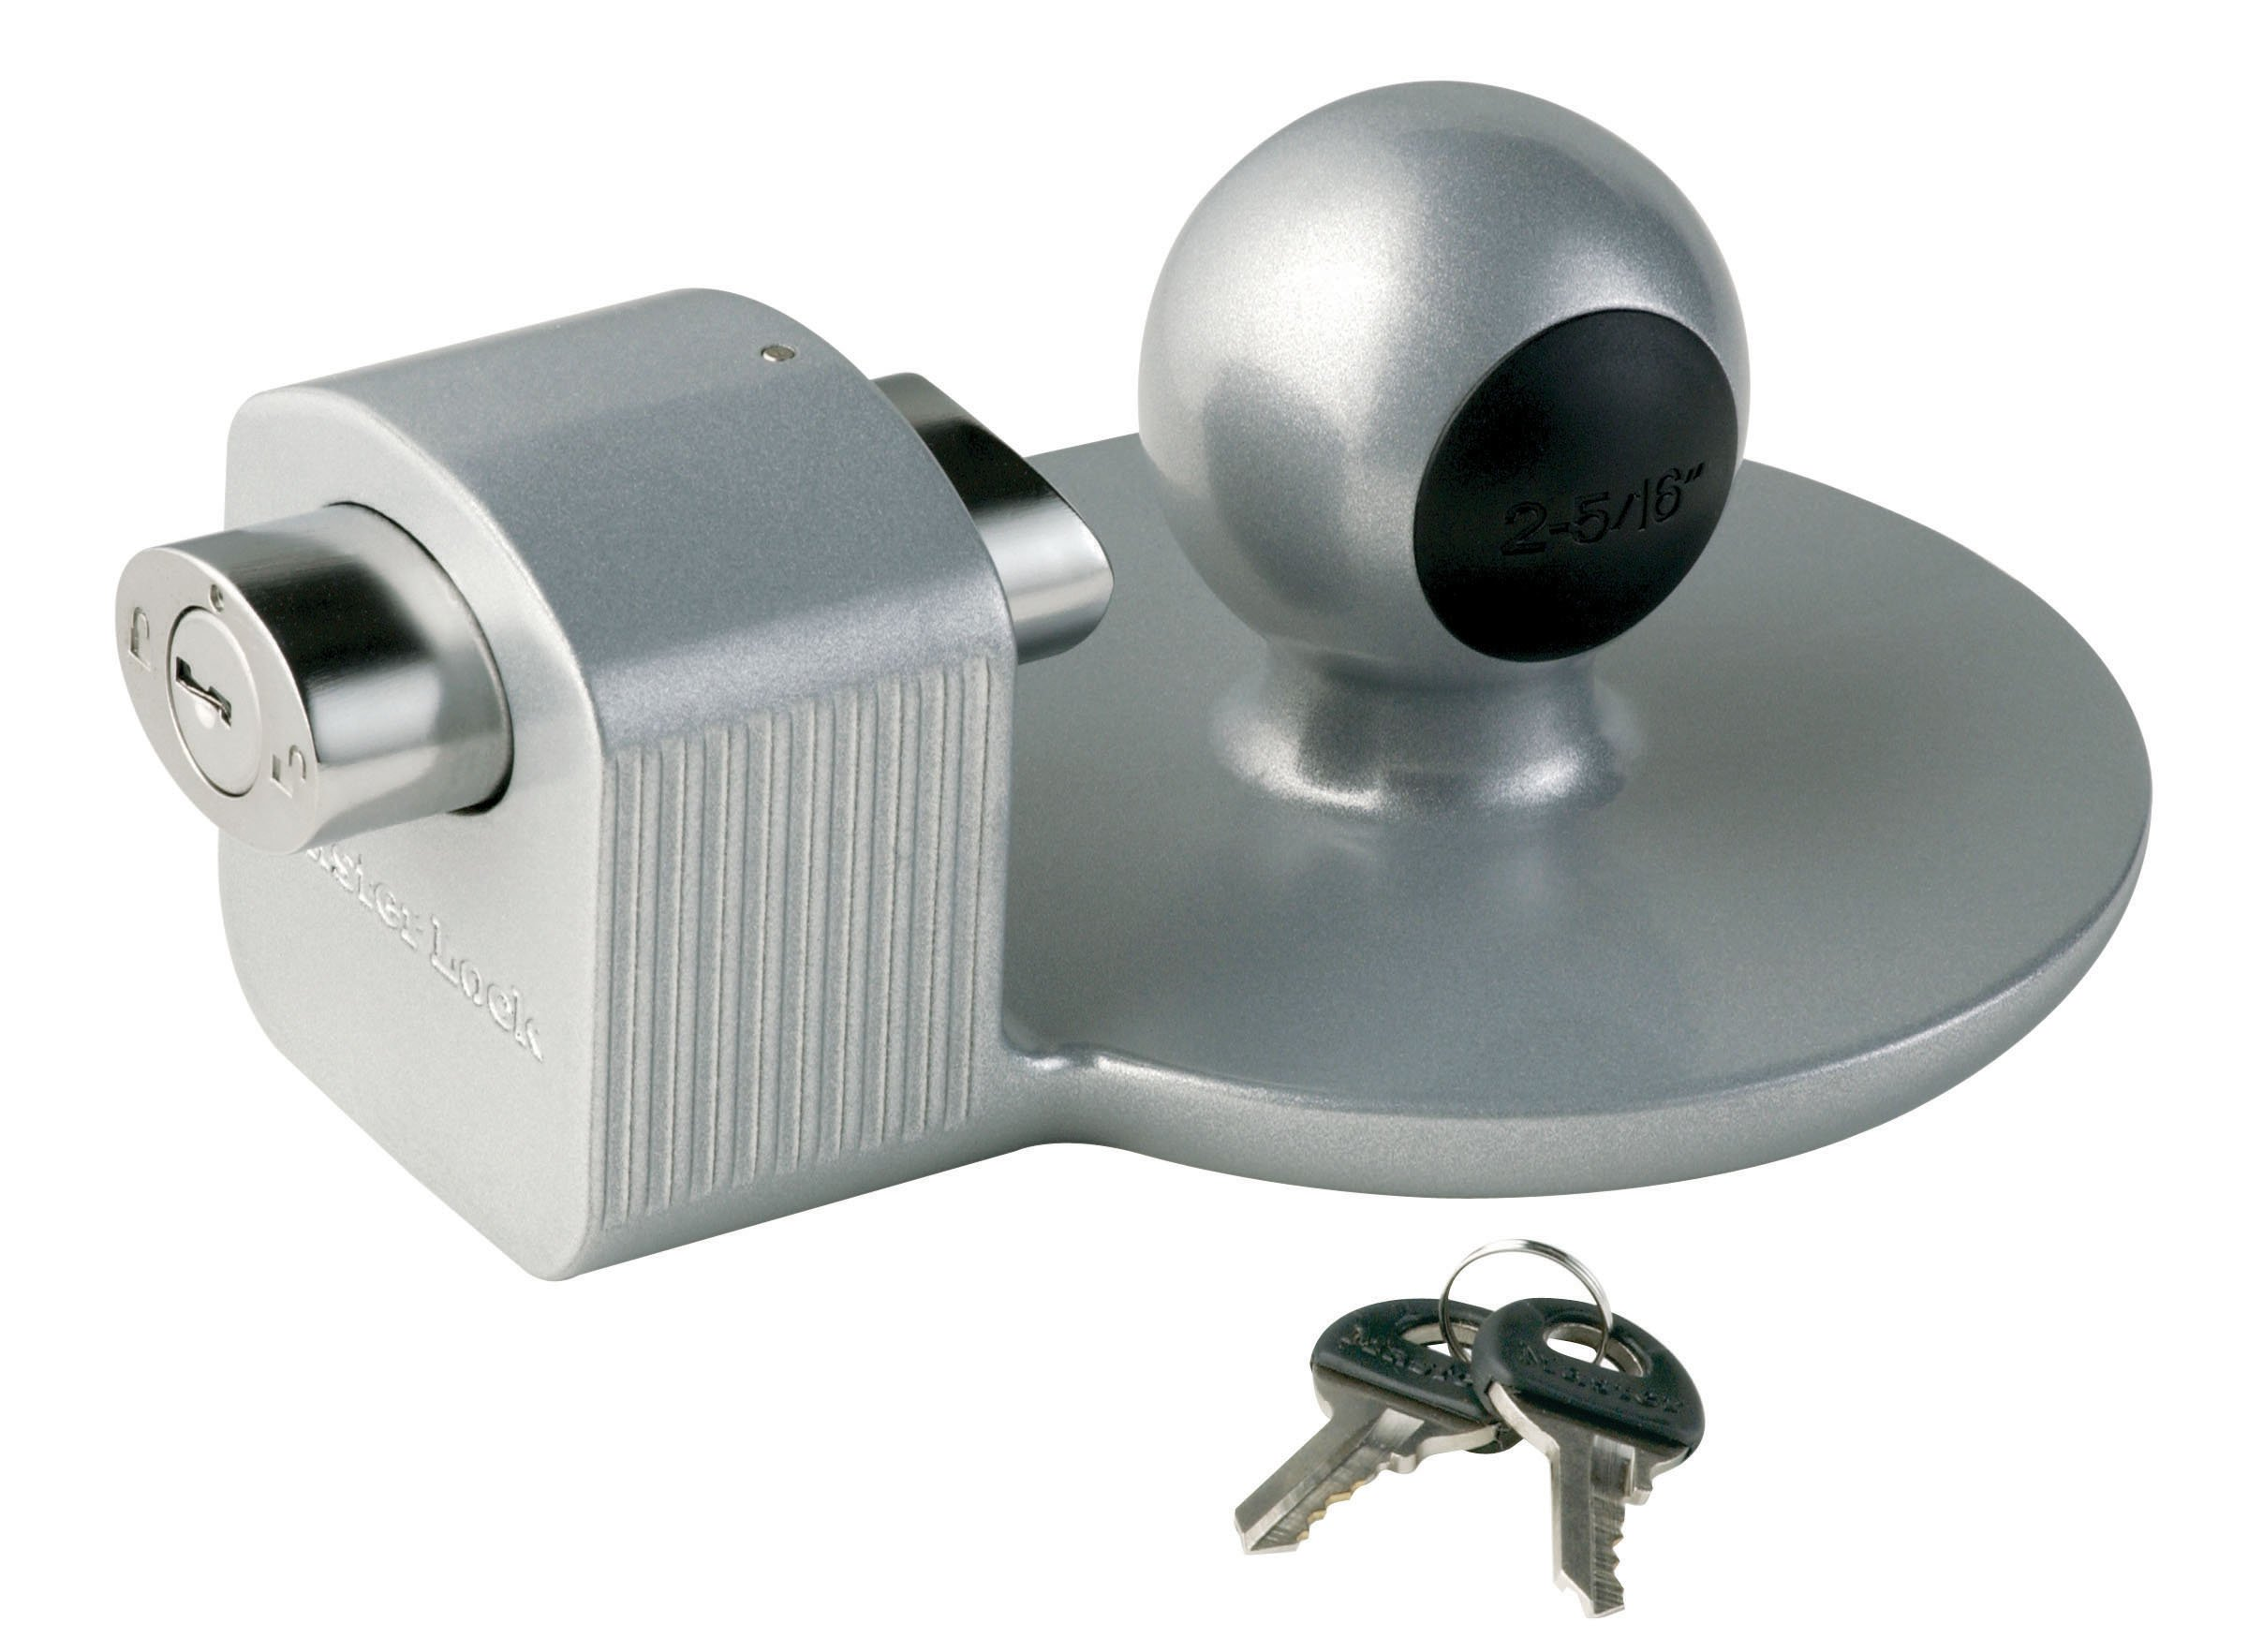 Master Lock Trailer Lock, Trailer Coupler Lock, Fits 2-5/16 in. Couplers, 378DAT by Master Lock